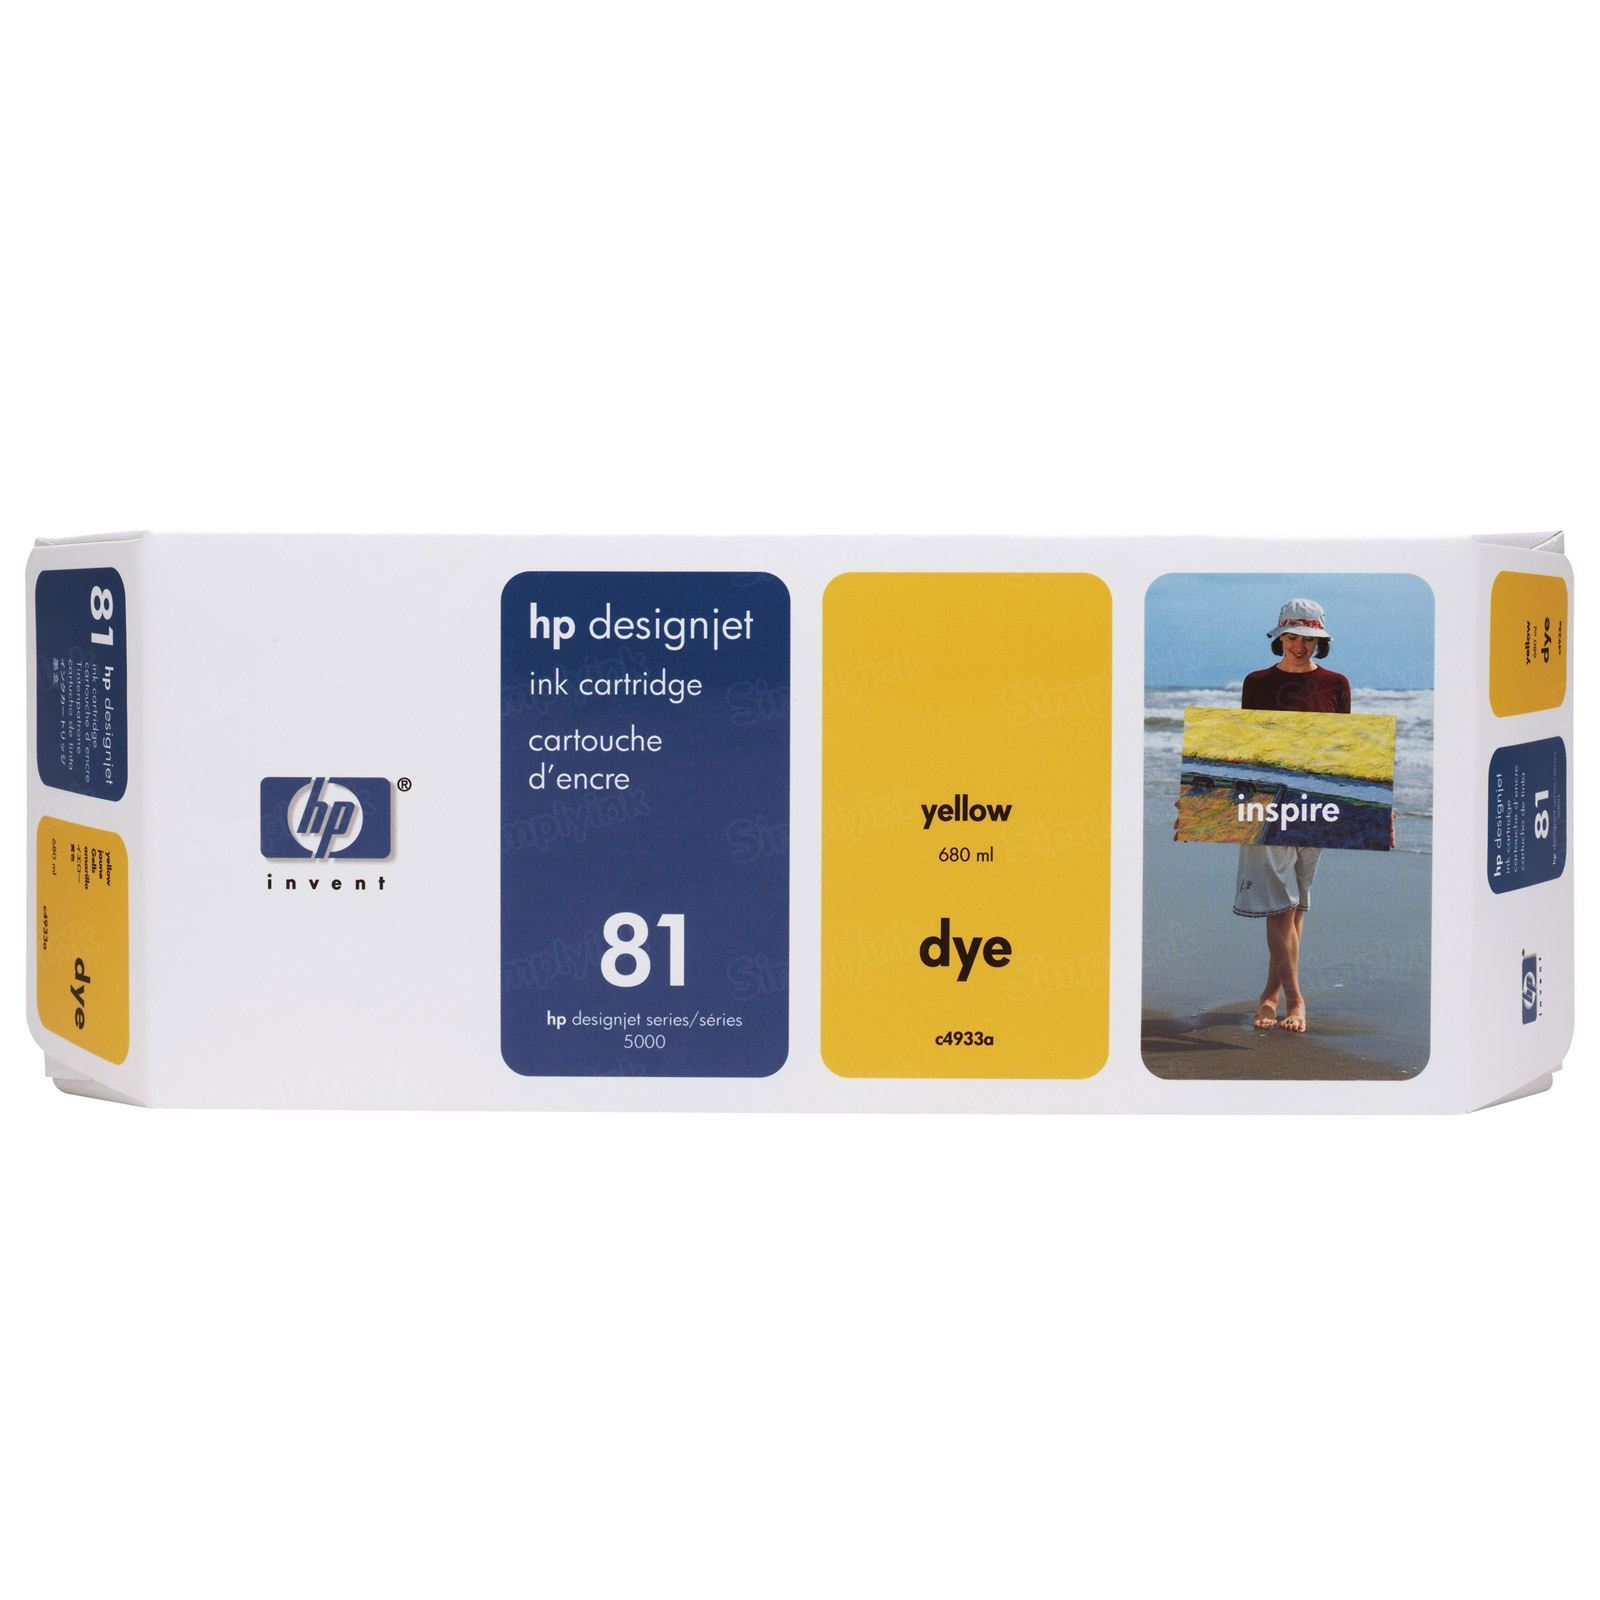 HP 81 Yellow Original Ink Cartridge C4933A